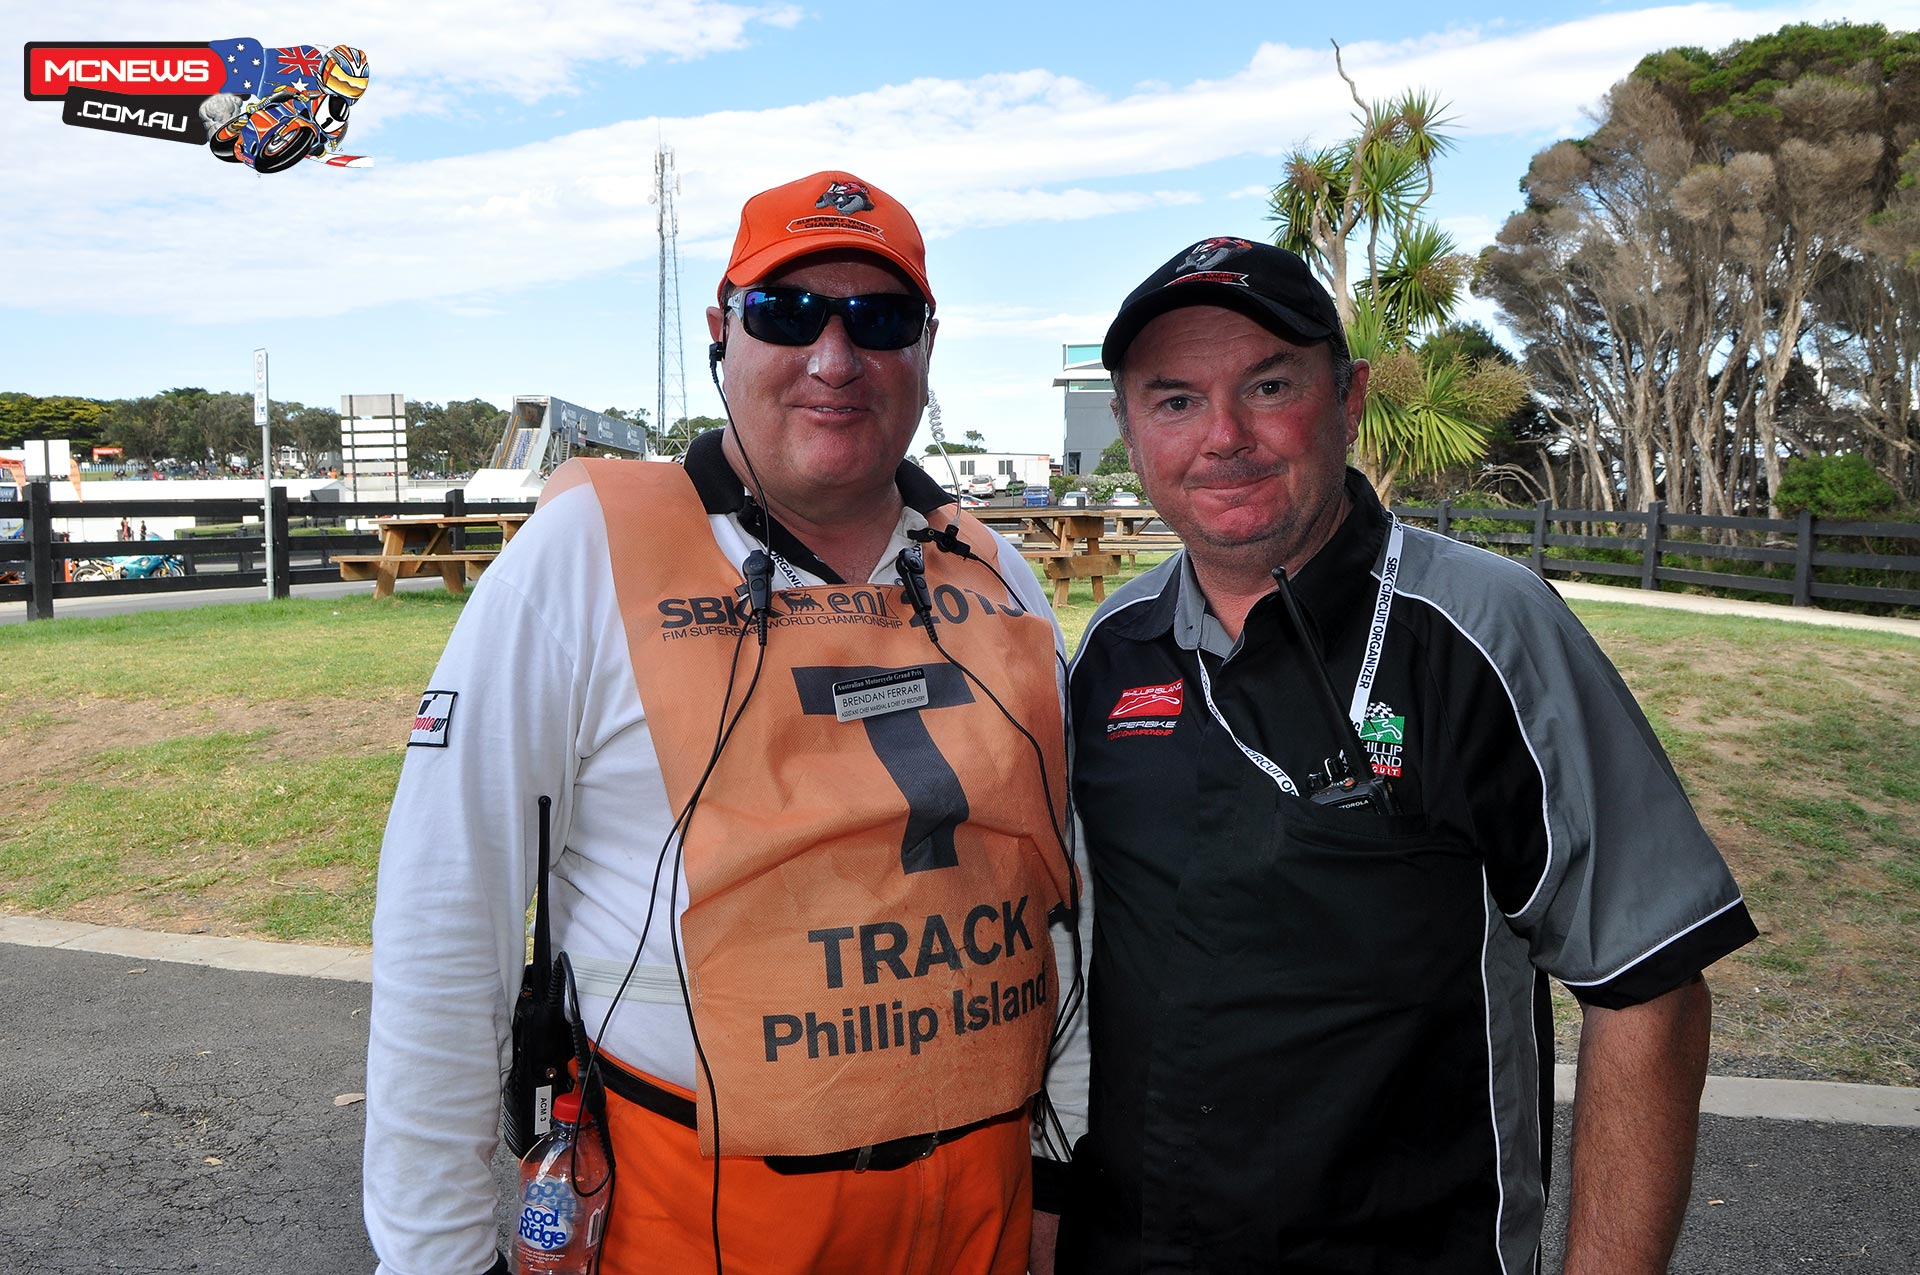 Brendan Ferrari and Paul O'Driscoll have done all 25 years of WSBK at Phillip Island